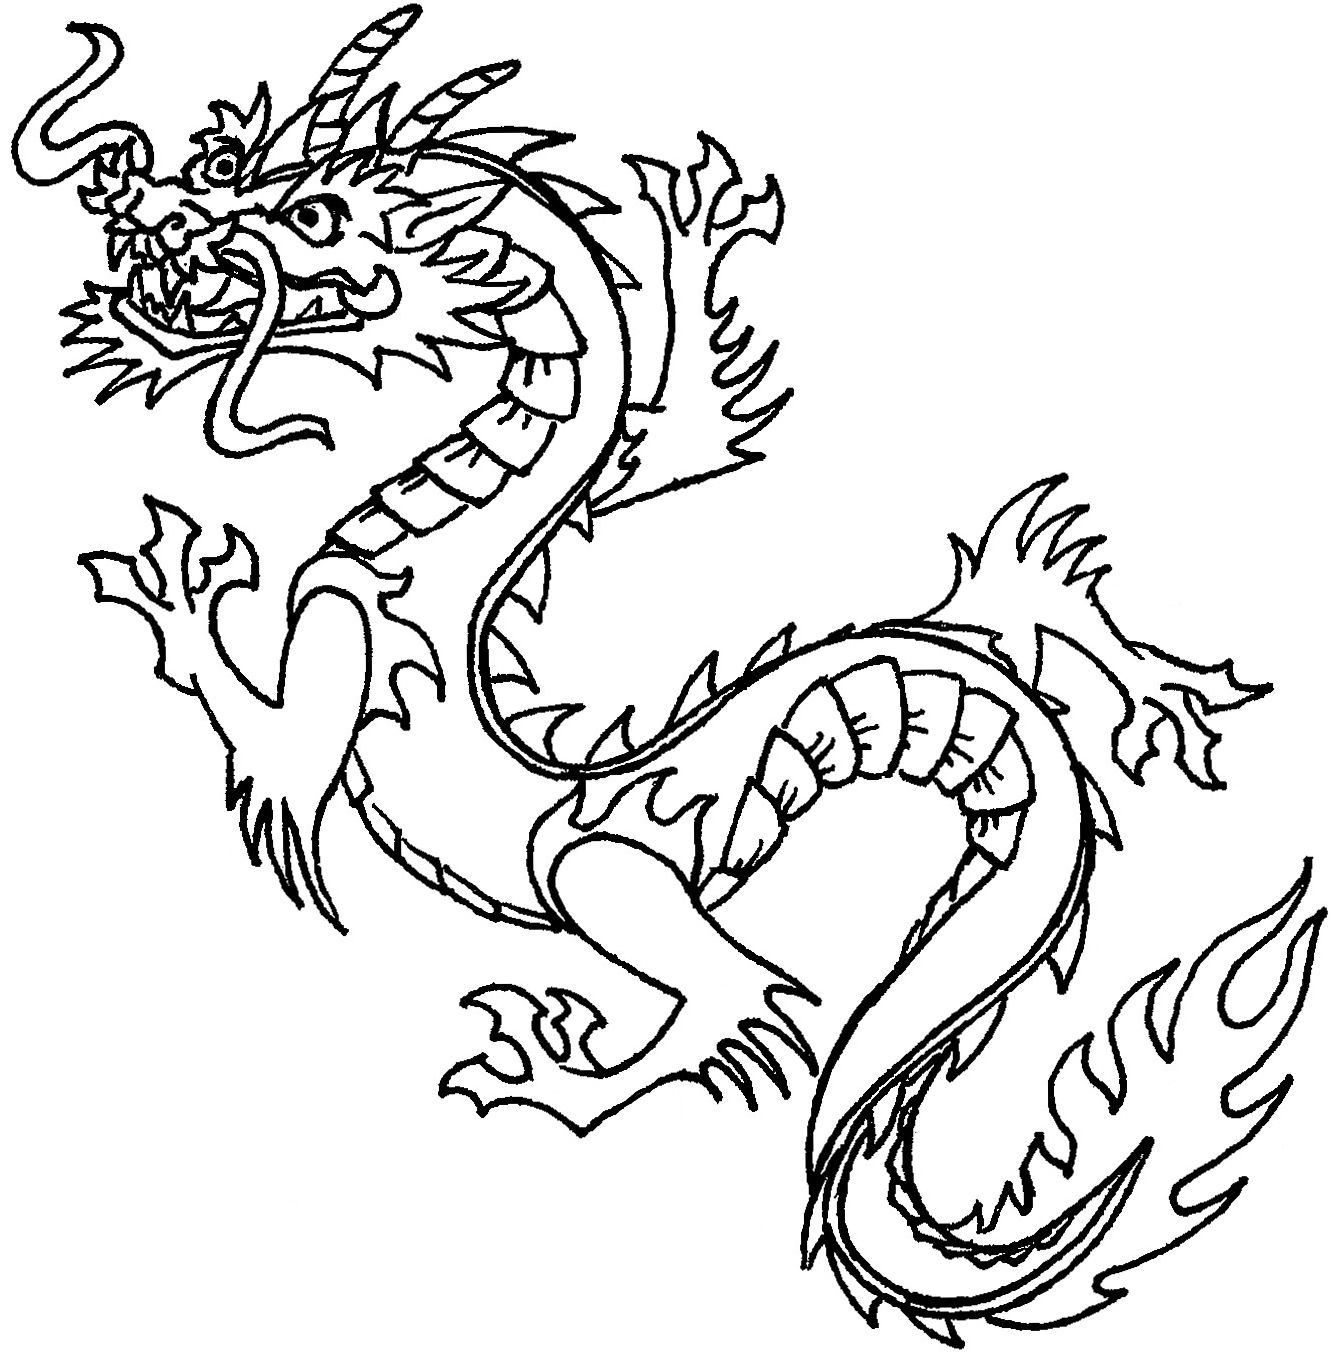 Chinese dragon clipart for kids clip art royalty free download Free Printable Chinese Dragon Coloring Pages For Kids | Stencils ... clip art royalty free download